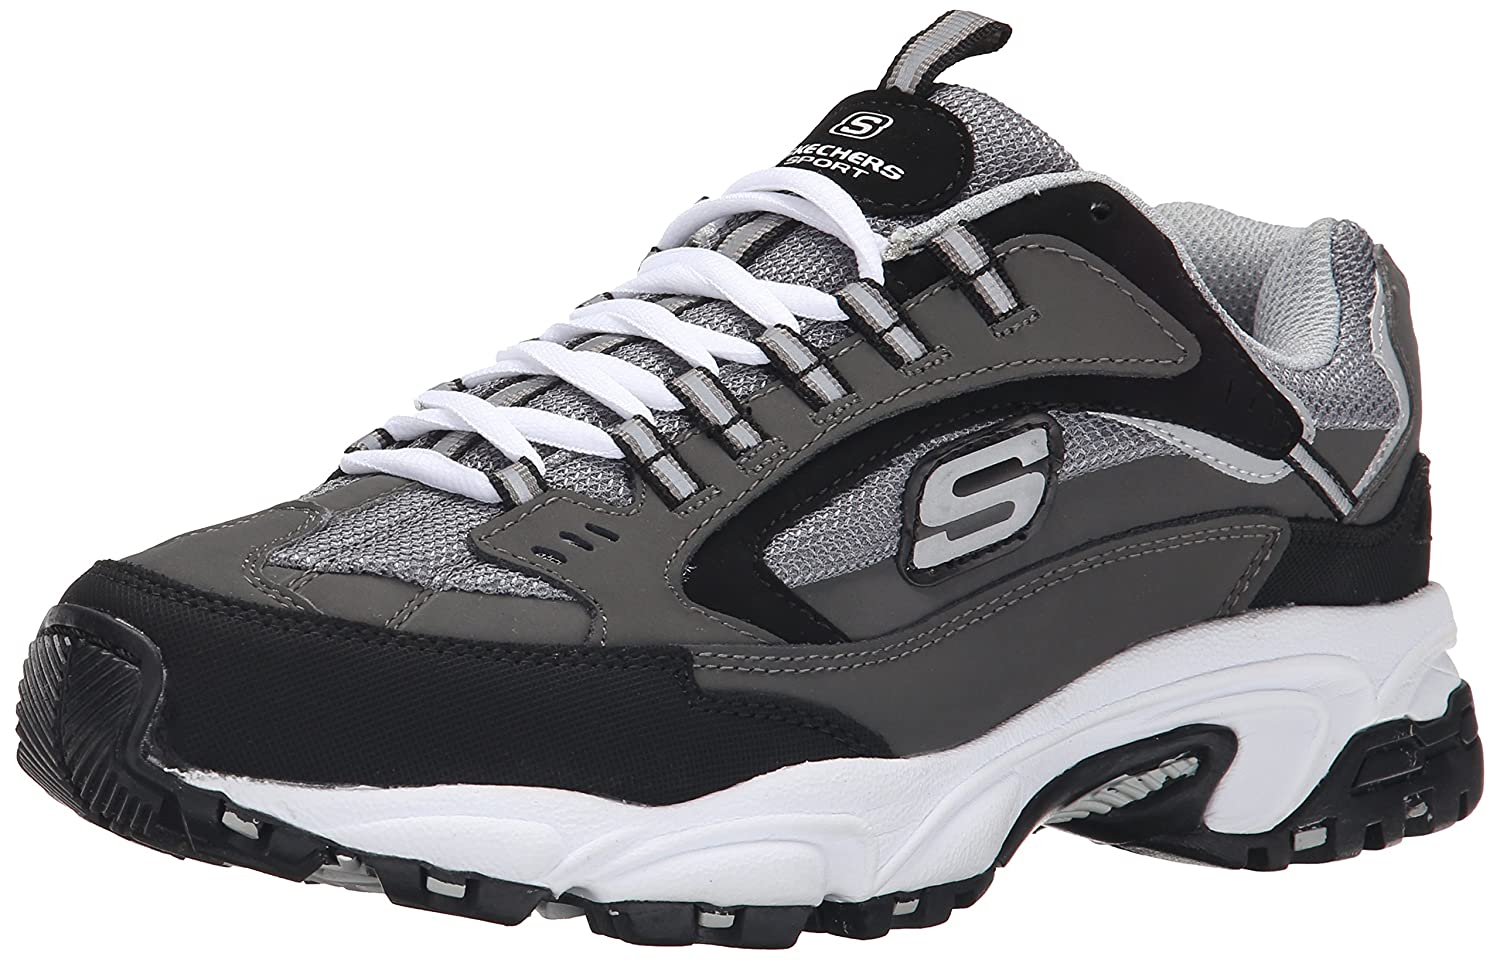 Skechers Sport Men's Stamina Nuovo Cutback Lace-Up US|Charcoal Sneaker B00VR533CE 8.5 D(M) US|Charcoal Lace-Up Cutback b92355